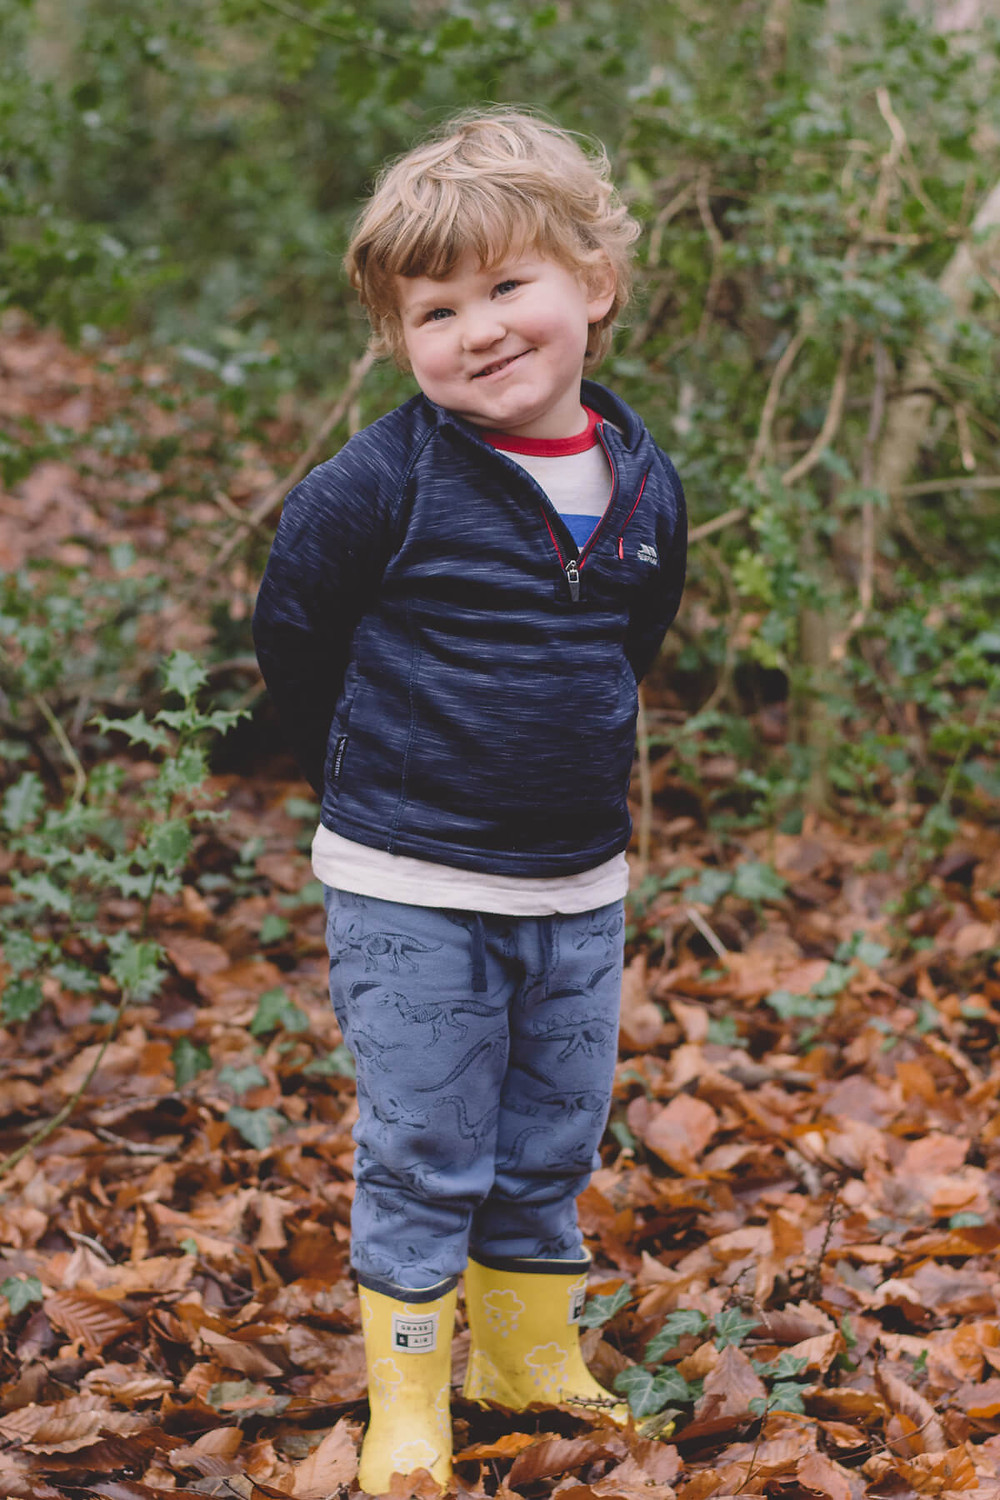 family photoshoot south wales boy smiling in forest autumn